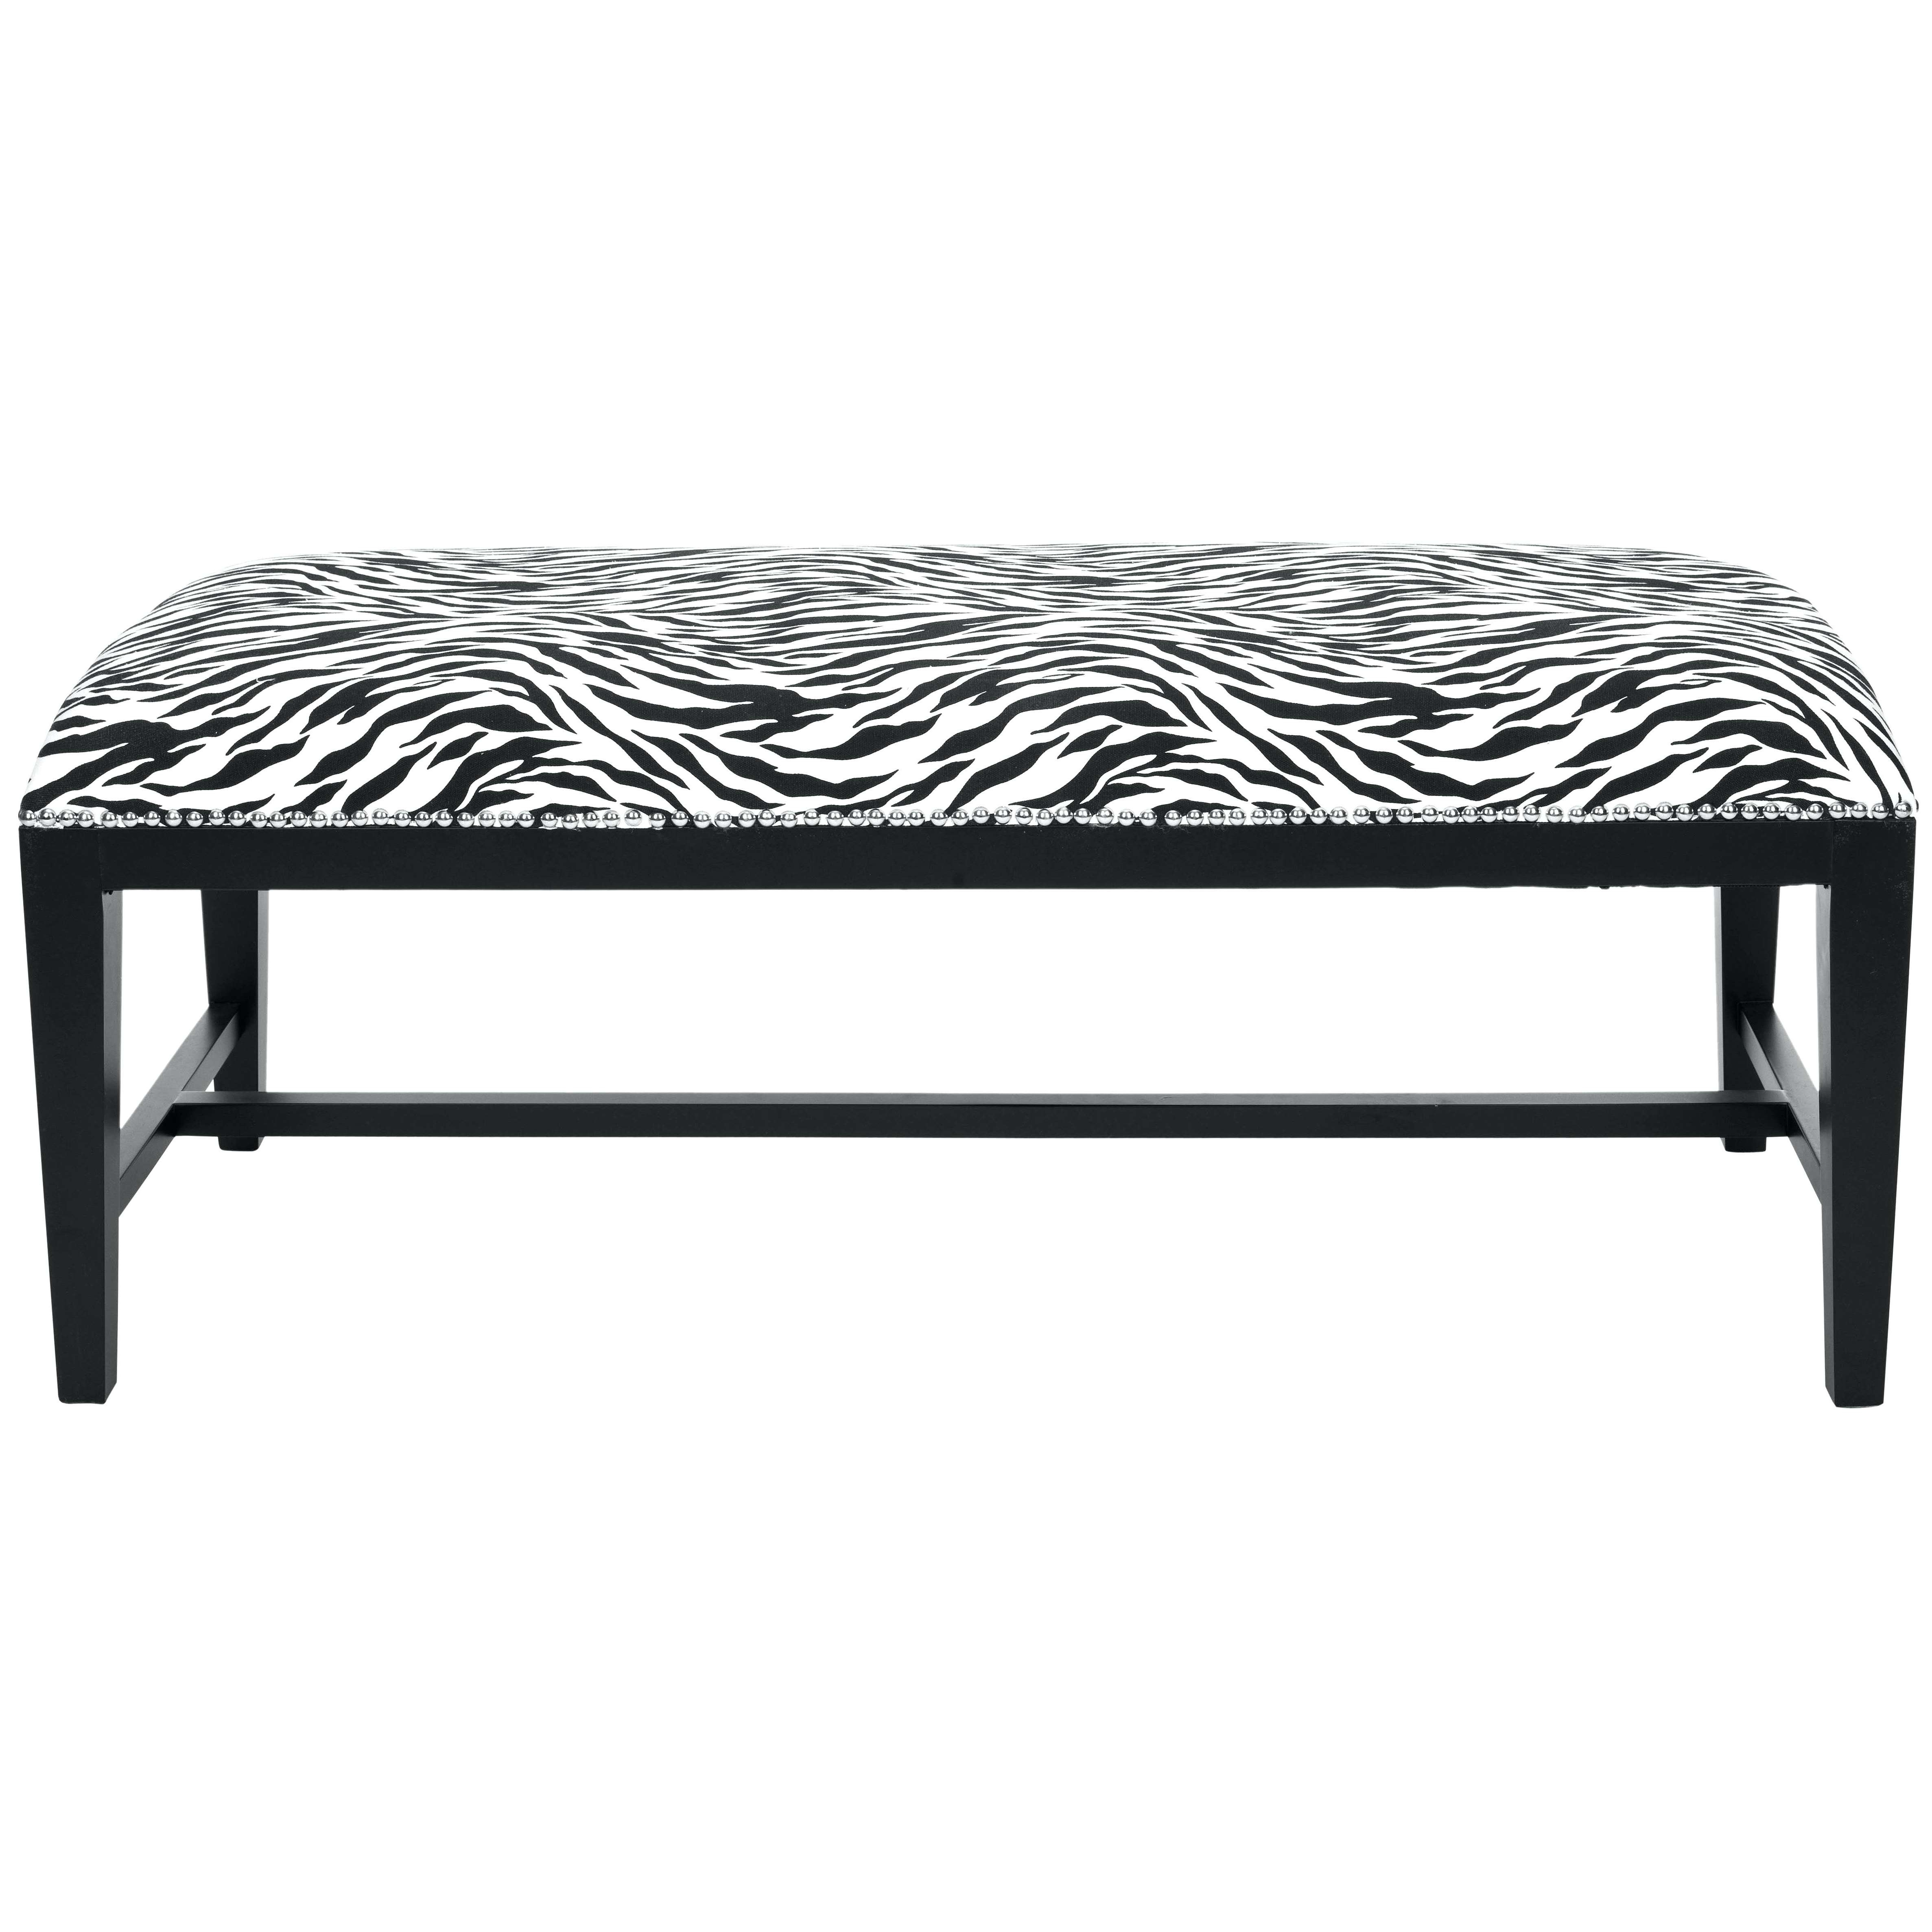 Preferred Animal Print Ottoman Coffee Tables Throughout Leopard Print Bench – Nurani (View 14 of 20)